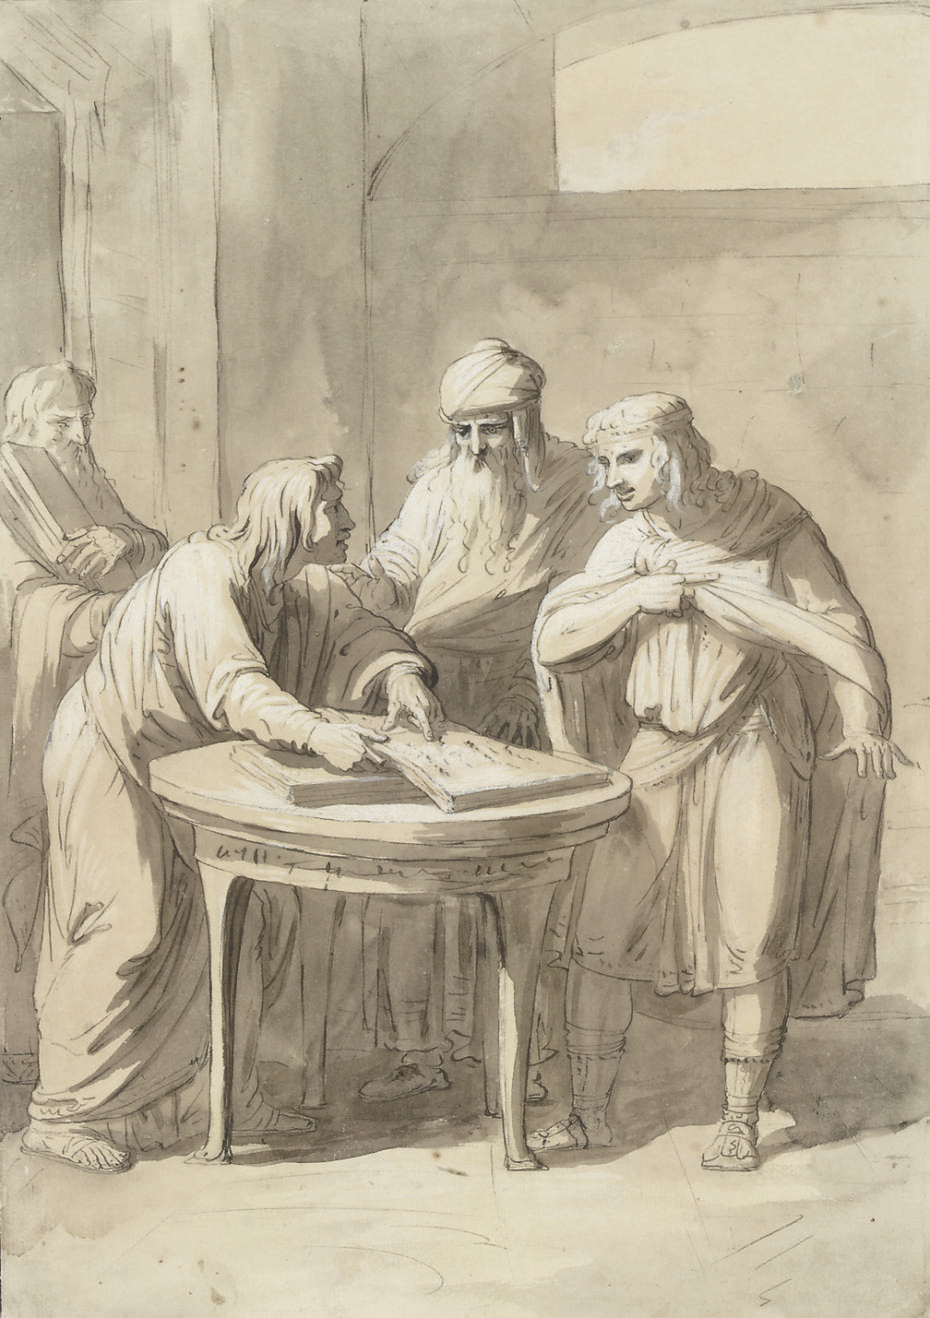 Four men in an interior, one pointing at a passage in a book